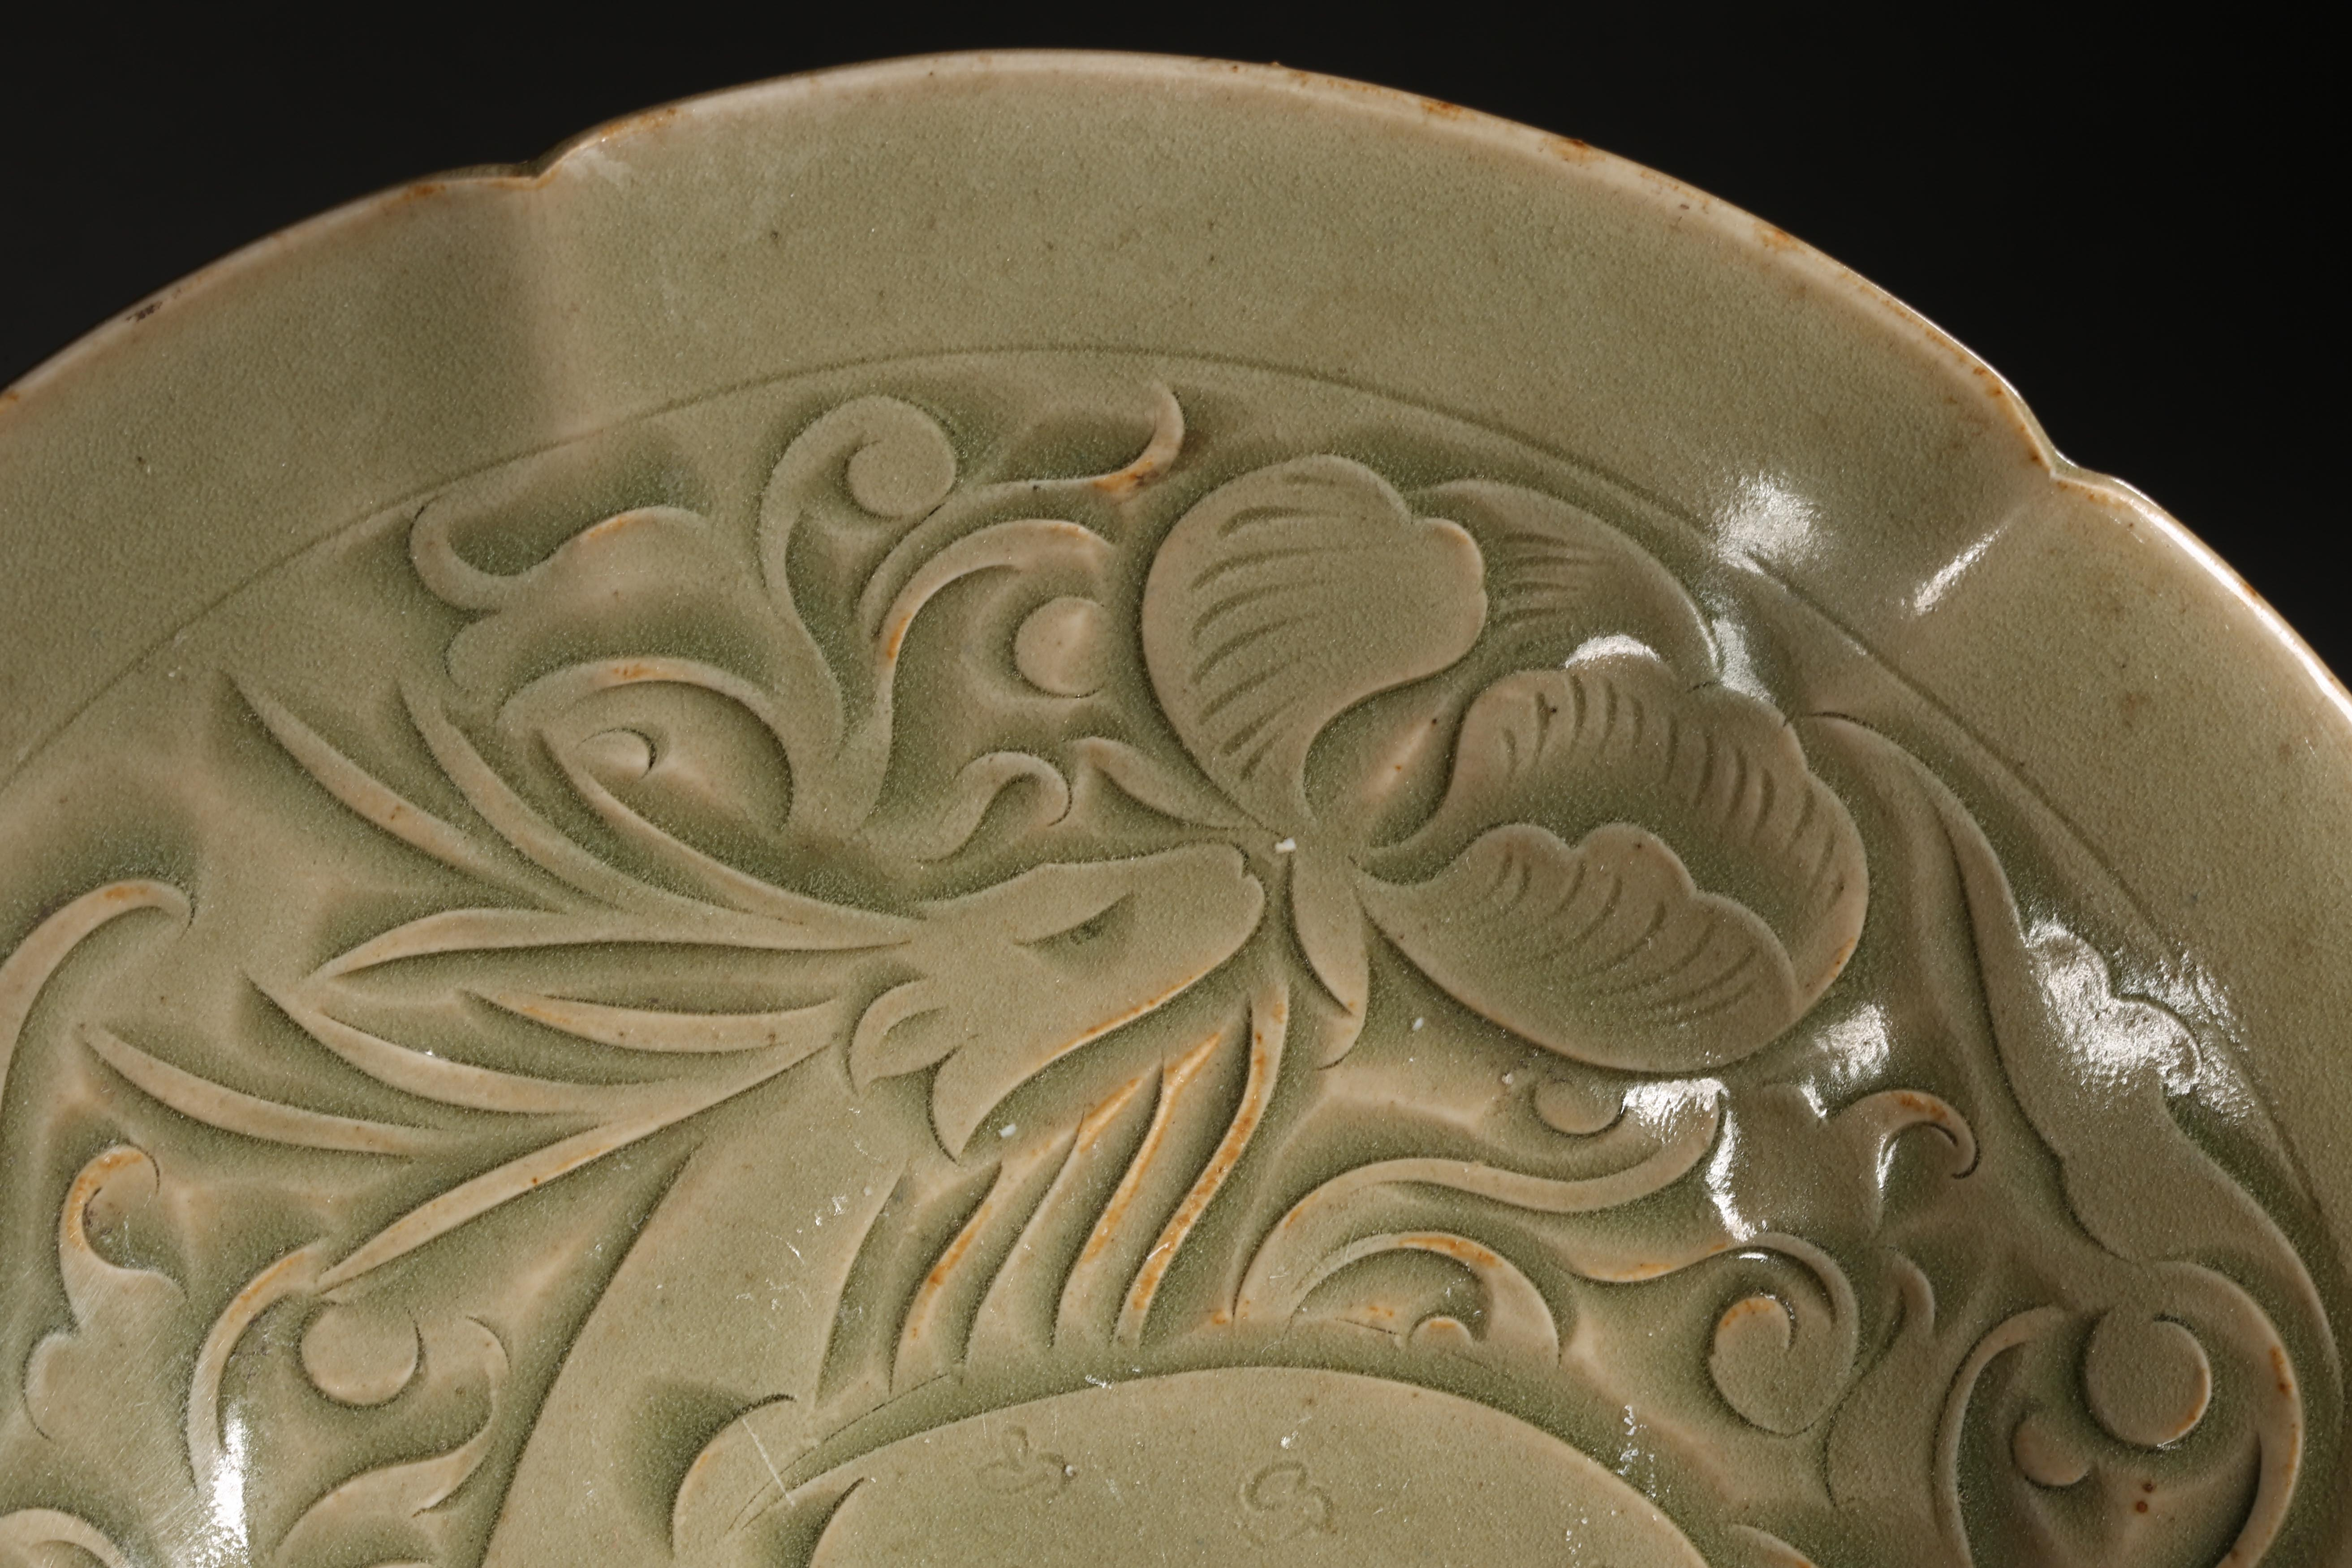 YAOZHOU KILN PLATE WITH RAFFITO DESIGN, NORTHERN SONG DYNASTY, CHINA - Image 8 of 9